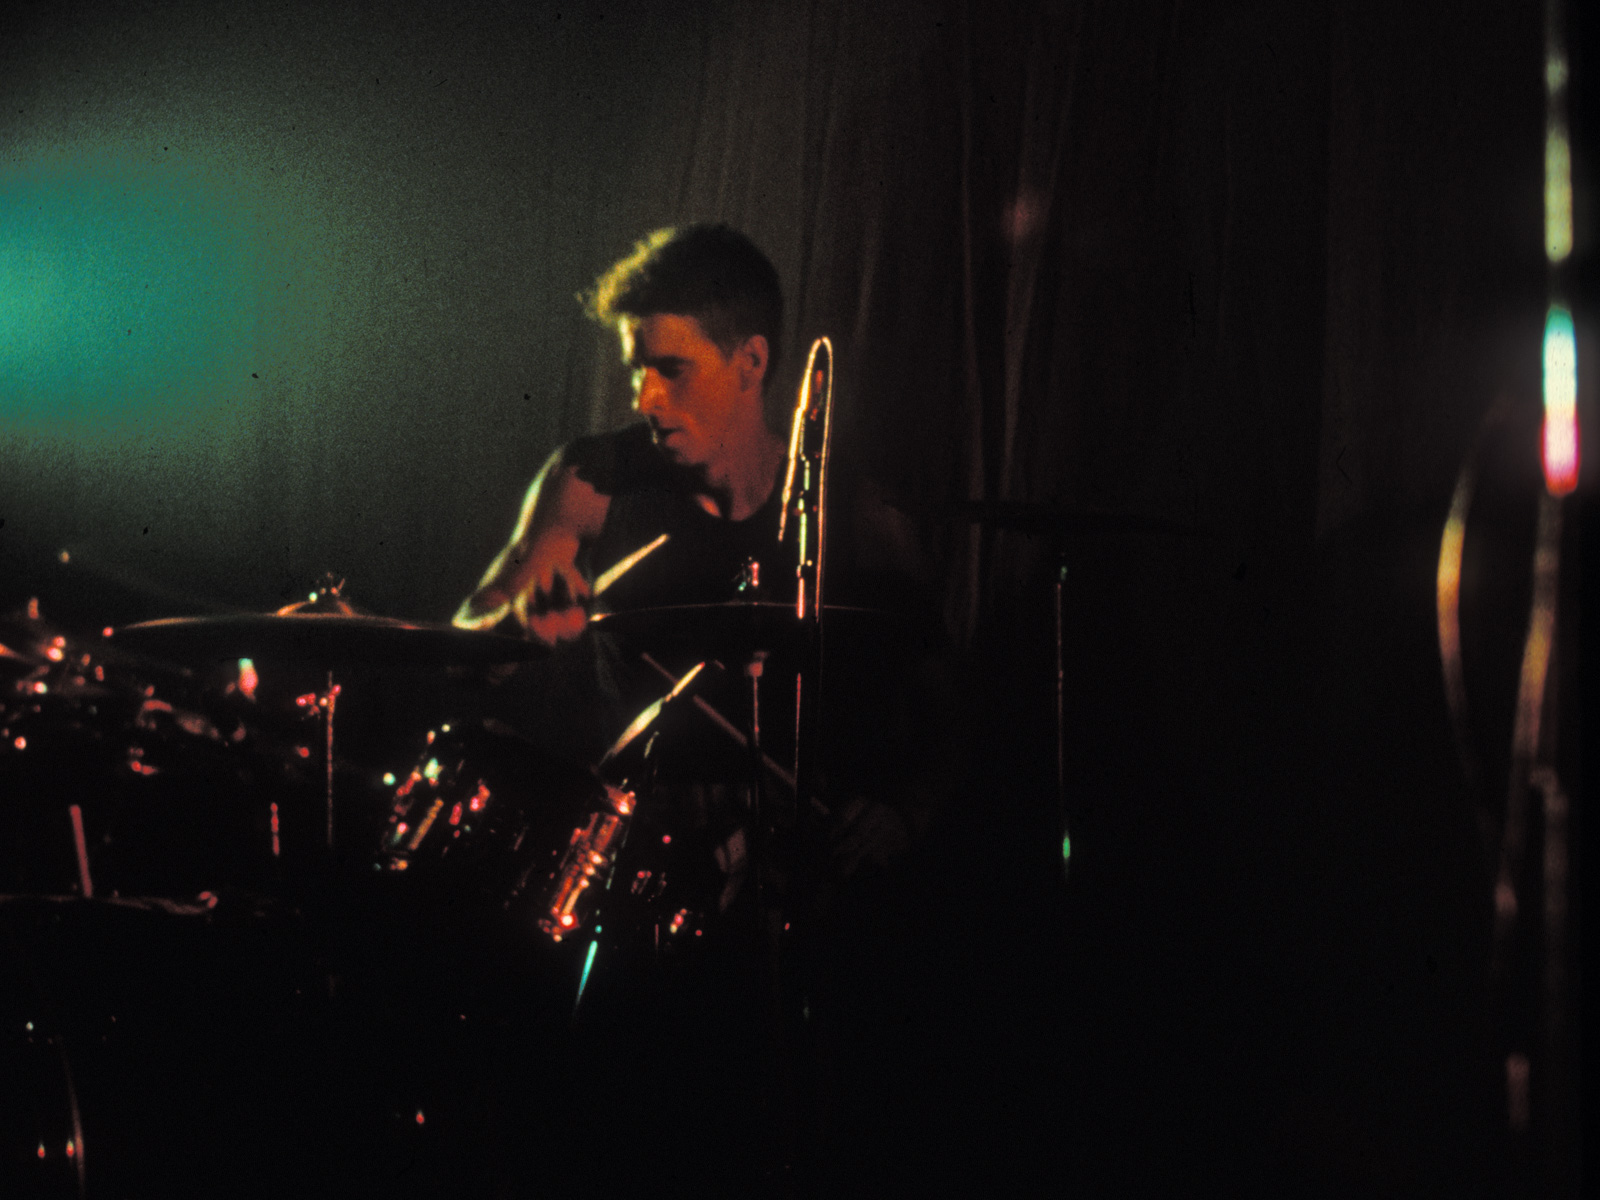 Paul Dodd performing with Personal Effects